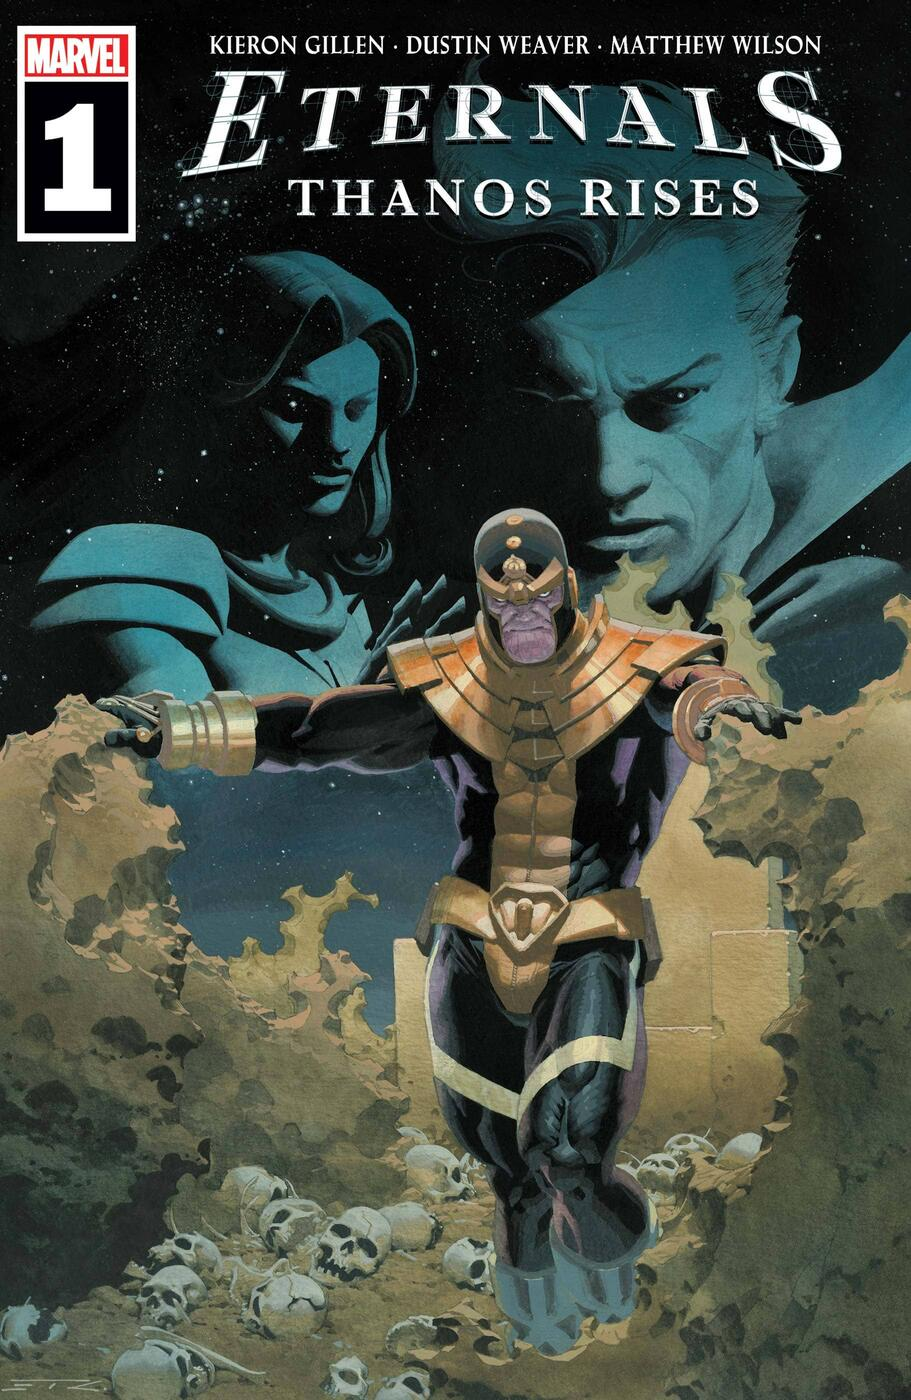 ETERNALS: THANOS RISES #1 cover by Esad Ribic